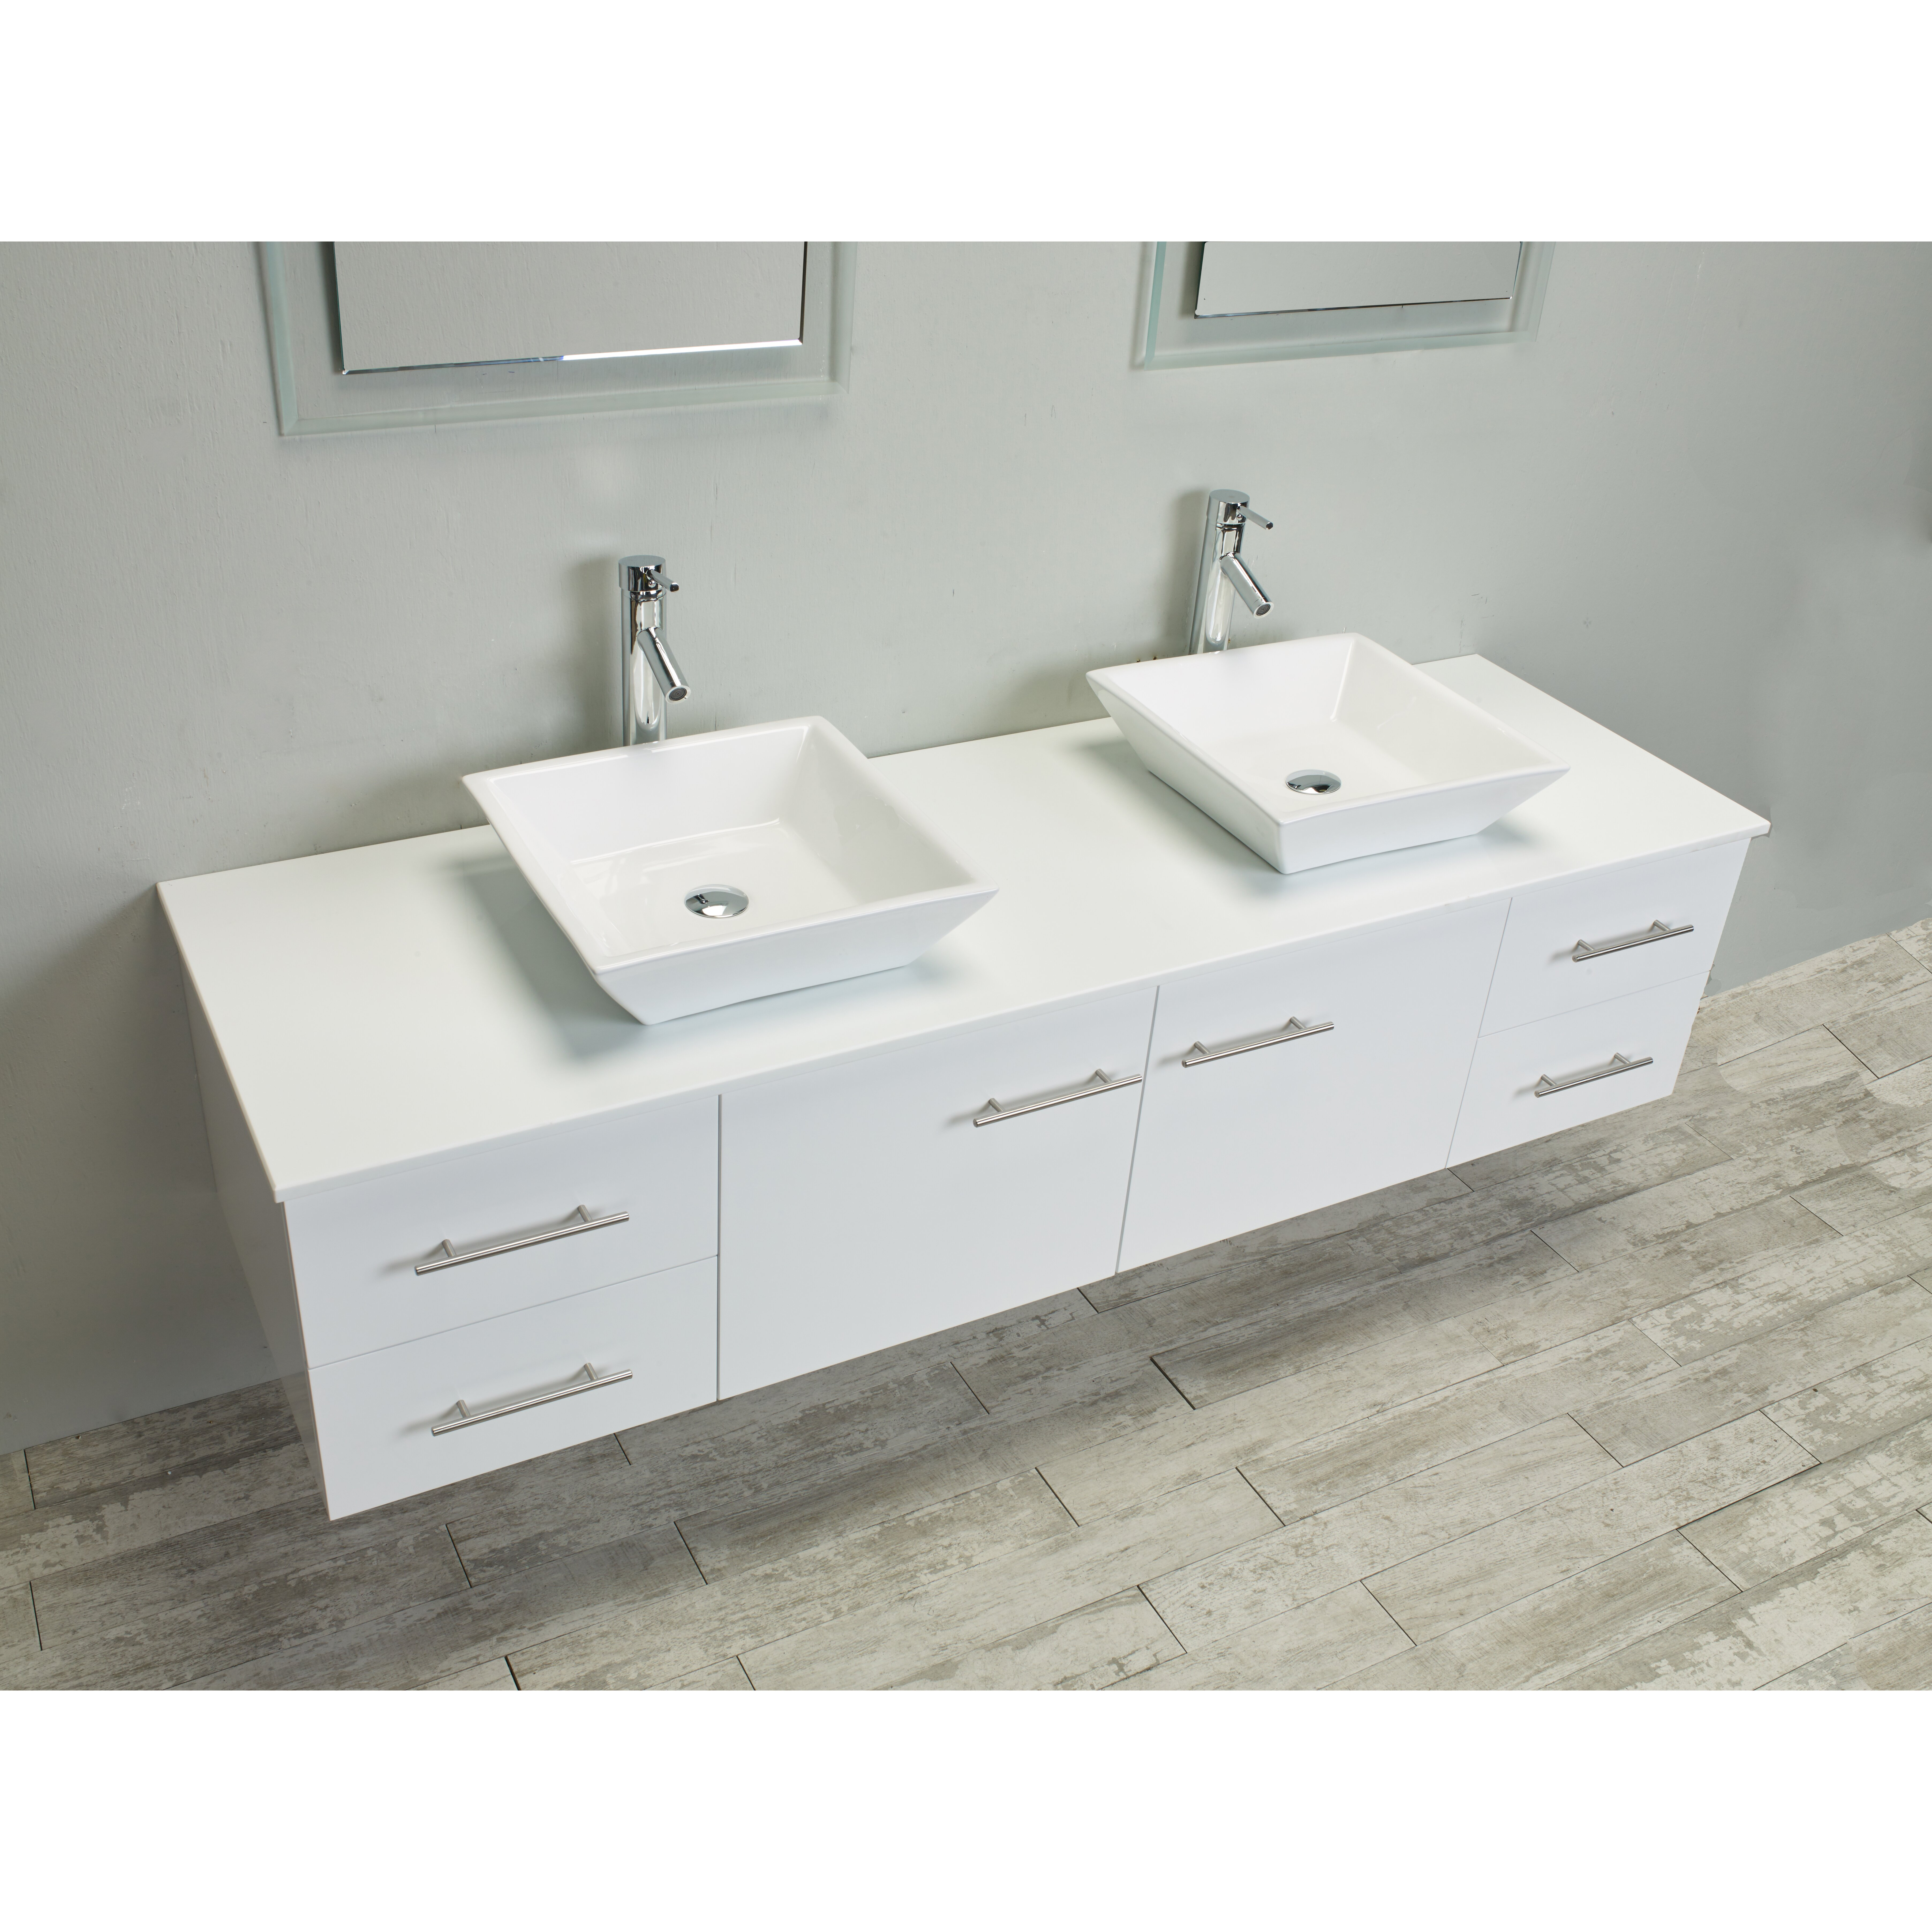 Twin Bathroom Sinks : ... Double Sink Bathroom Vanity with Counter-Top and Double Sinks by Eviva